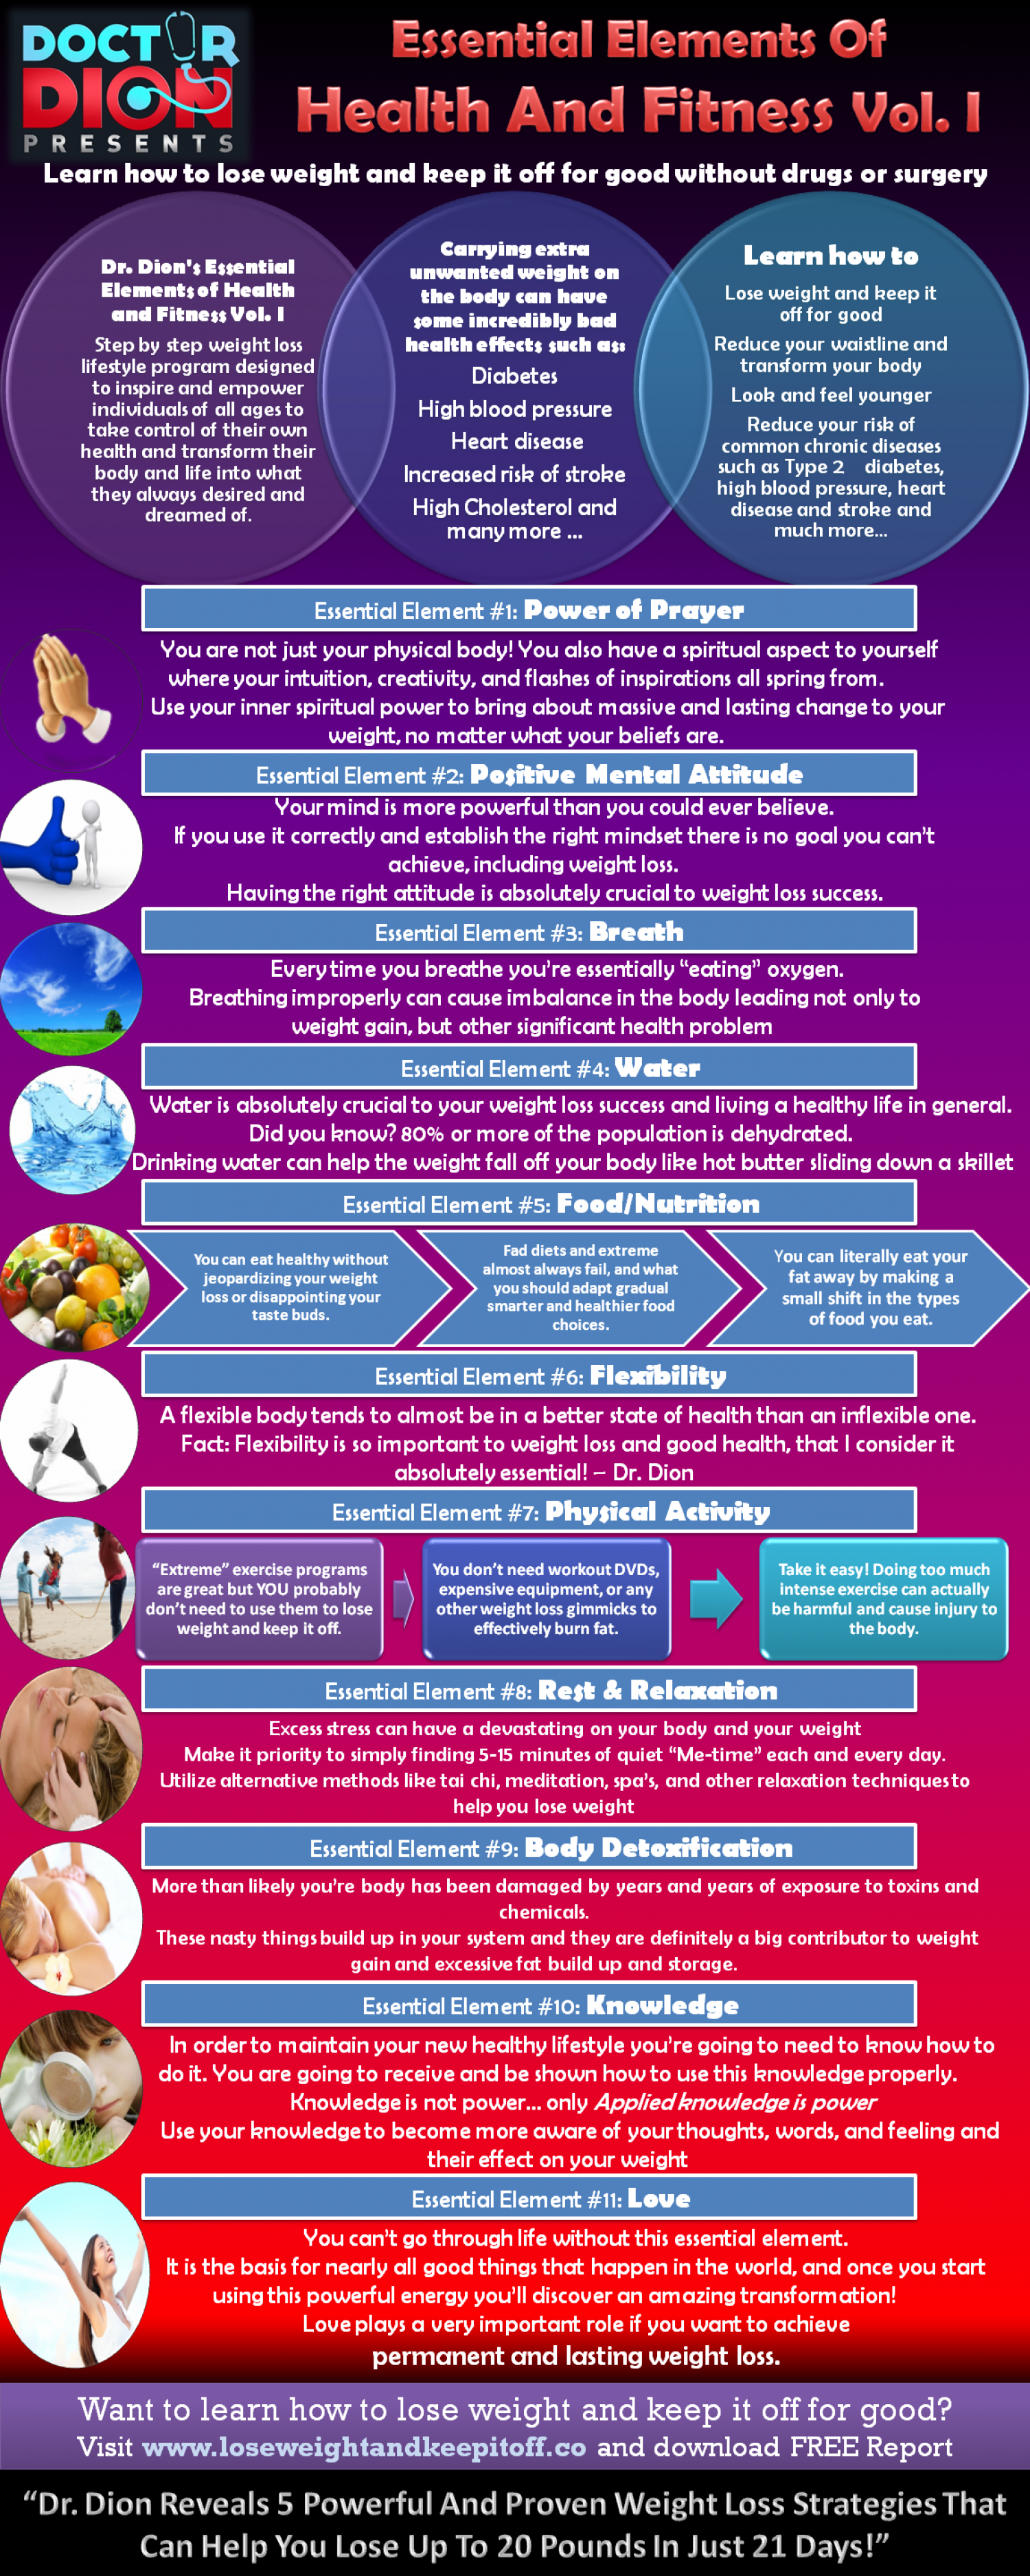 Dr. Dion's Essential Elements Of Health And Fitness Vol. I Infographic